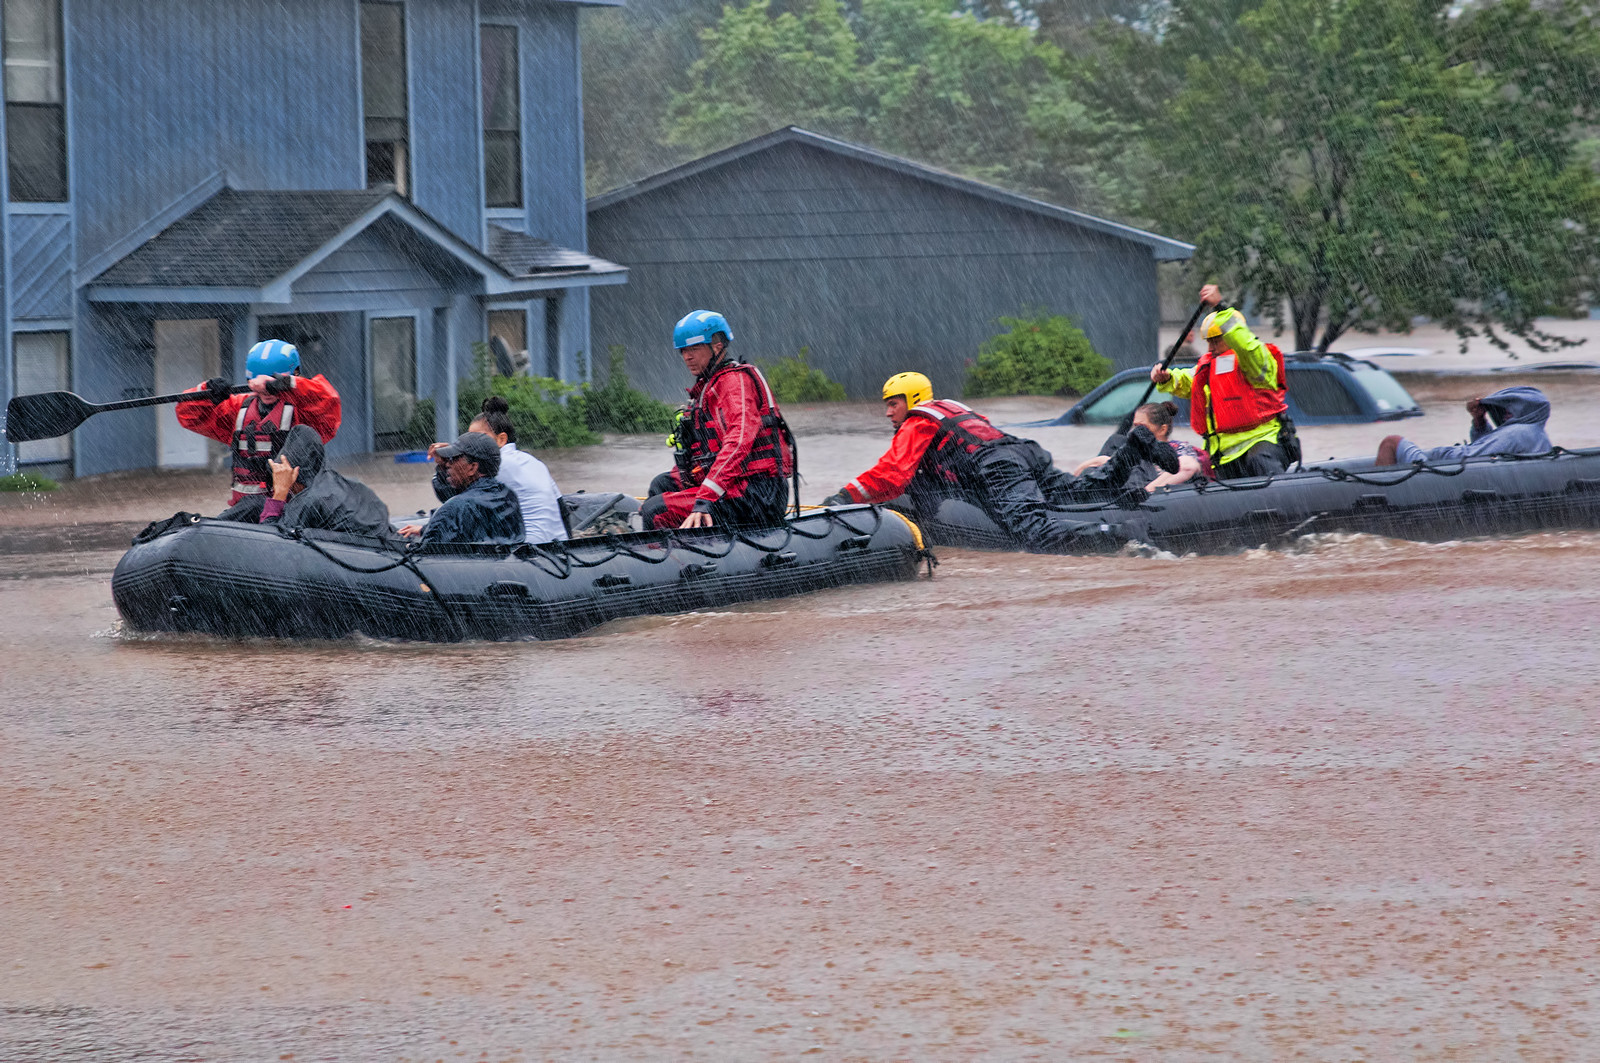 Swift water rescue teams, working for local emergency services, evacuate victims of the flooding caused by Hurricane Matthew in Fayetteville N.C., Oct